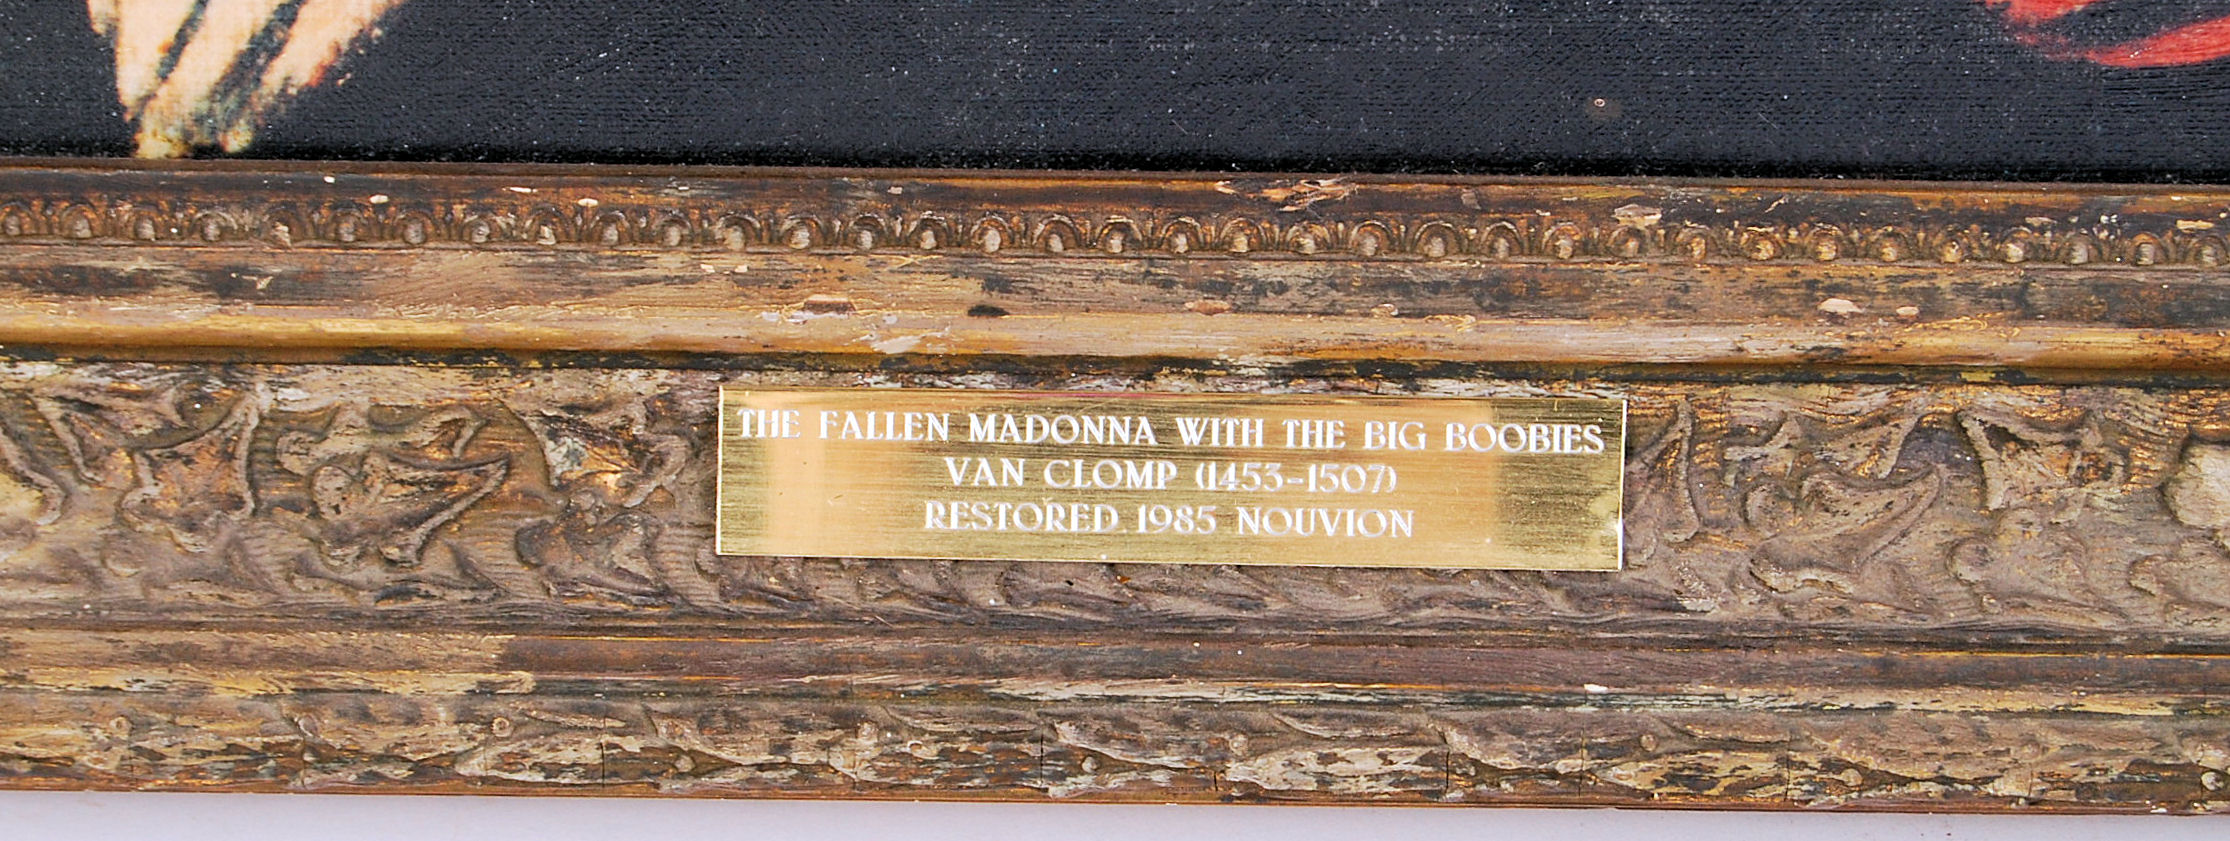 Lot 303 - ORIGINAL 'FALLEN MADONNA WITH THE BIG BOOBIES' FROM 'ALLO 'ALLO